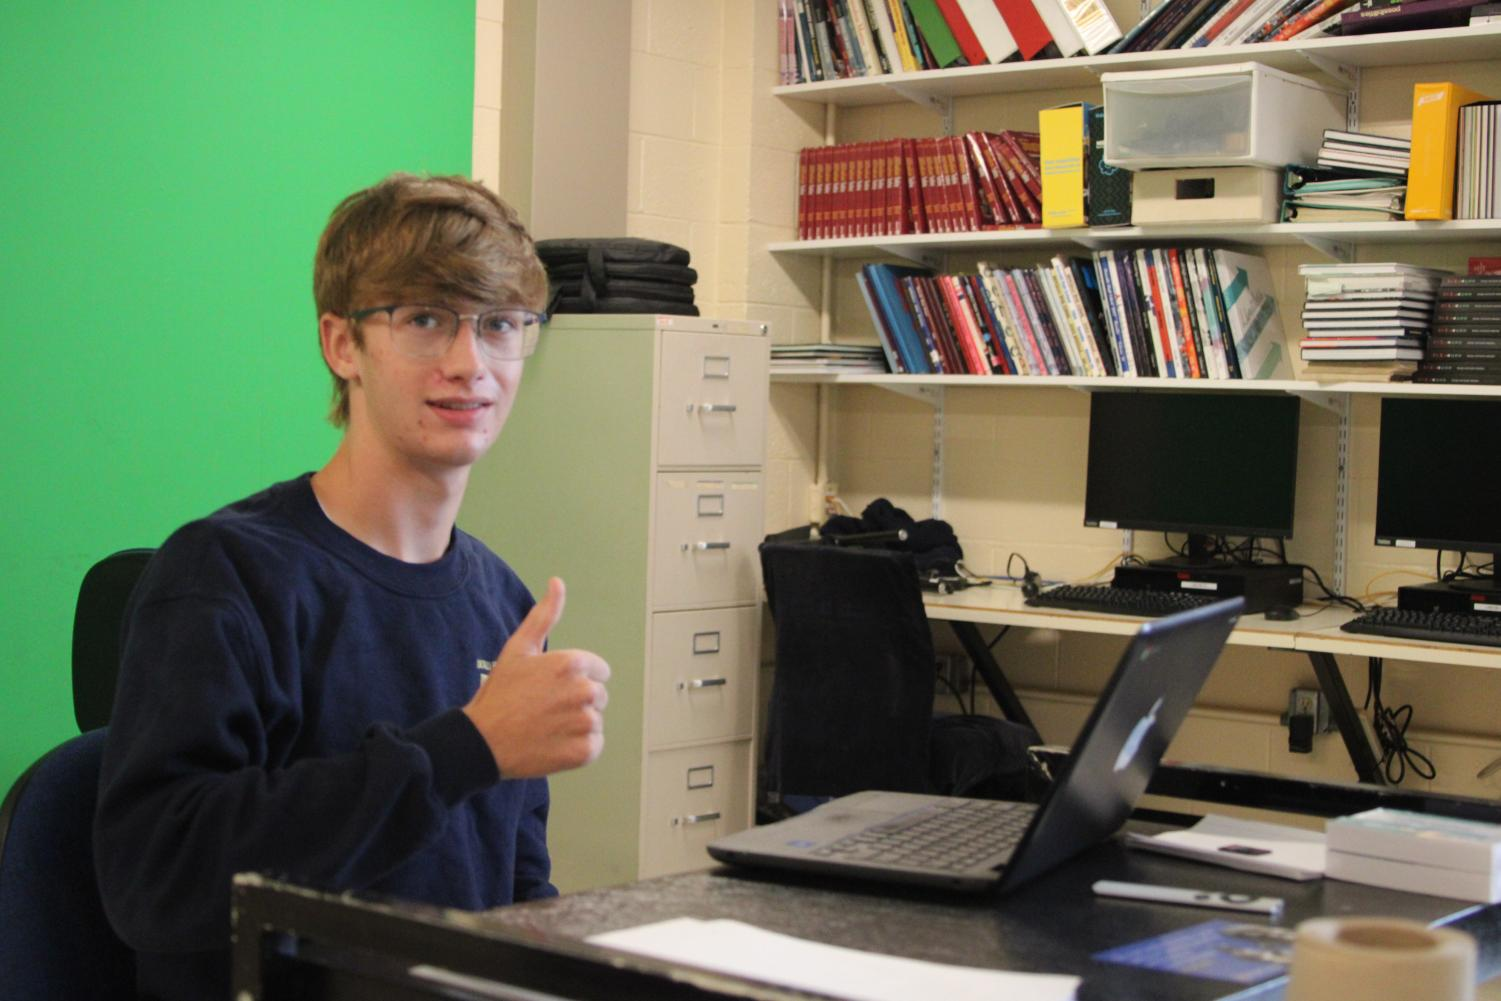 MMM... COMFY: Many students were skeptical about hybrid learning at first, but have quickly become comfortable and satisfied with the situation. Students are definitely not in an ideal situation, but they can accept the positives as they come.